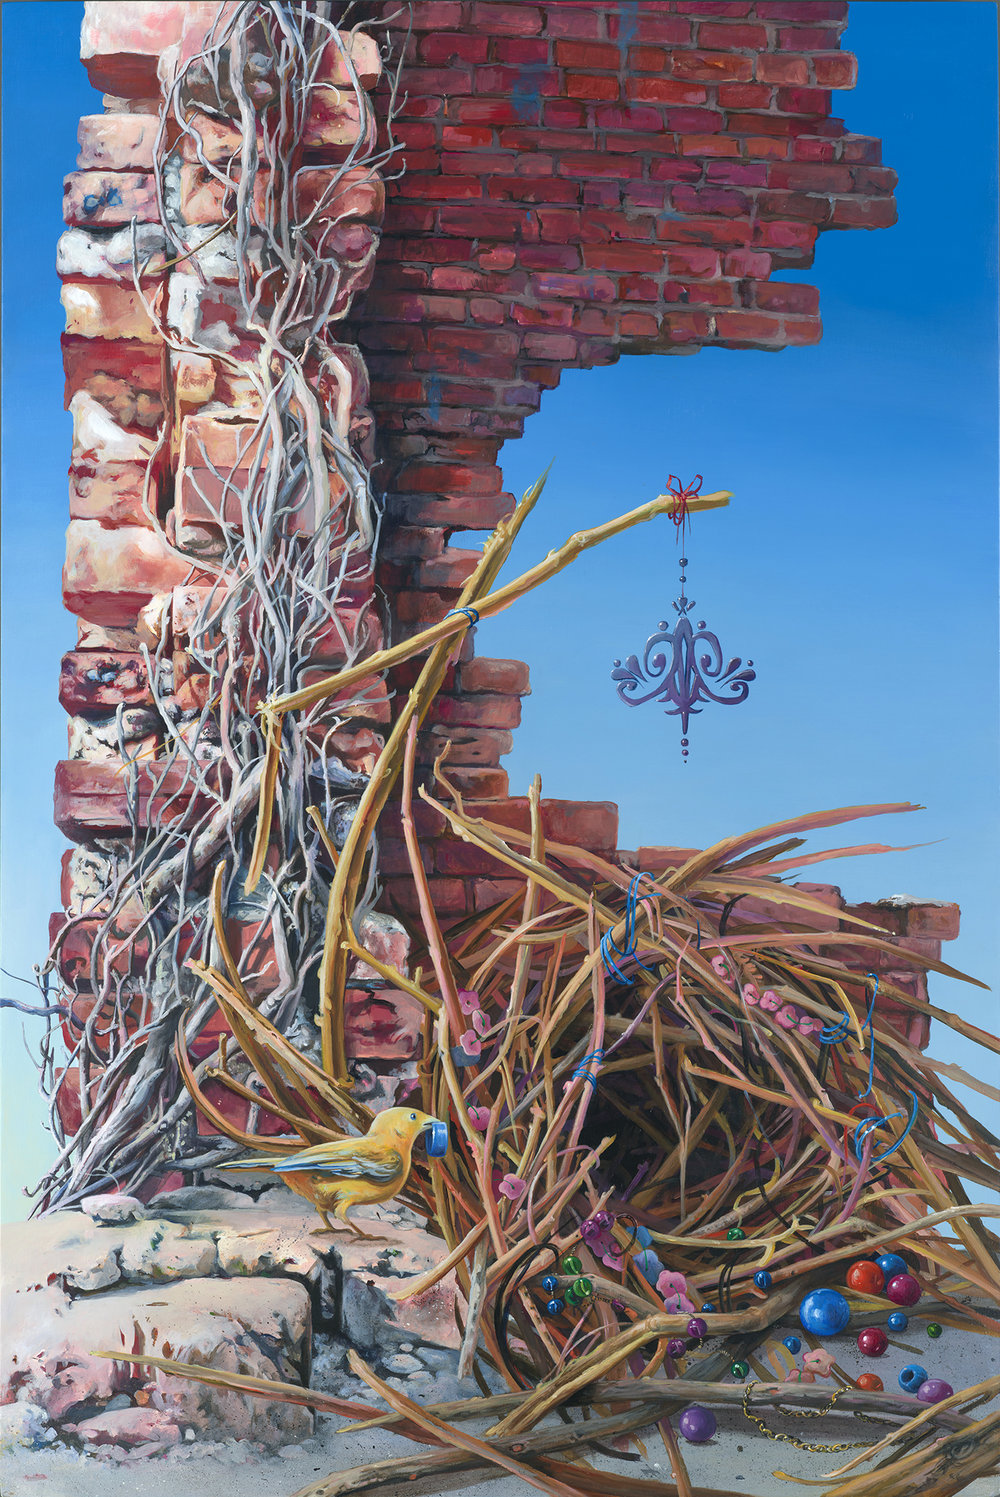 1 Gigi Chen-_A Structure_-24x36 inches-acrylic on wood-2017-$3000.jpg